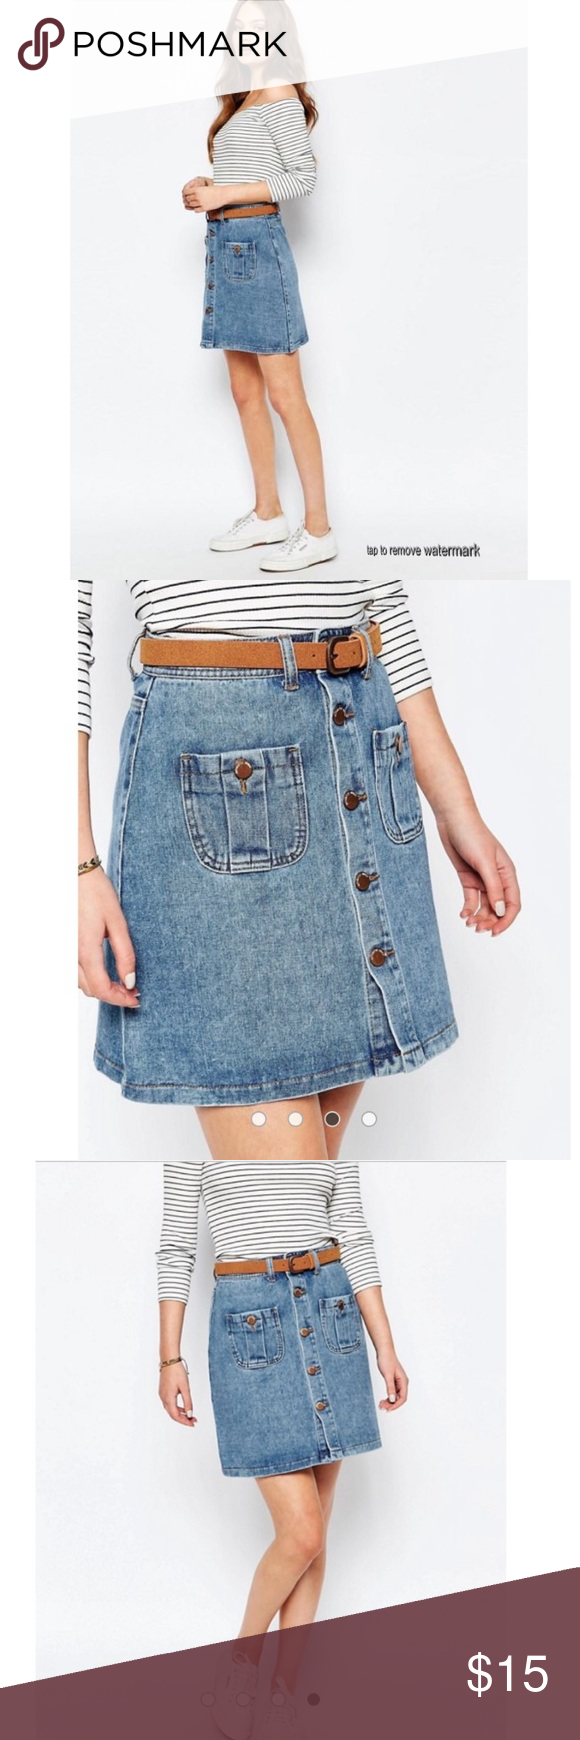 b93df38b19 •ASOS• New Look Mini Button Down Denim Skirt Vintage style button front  with pocket. Absolutely darling! UK Size 14. EU Size 42. Approximately a  Size 10 in ...